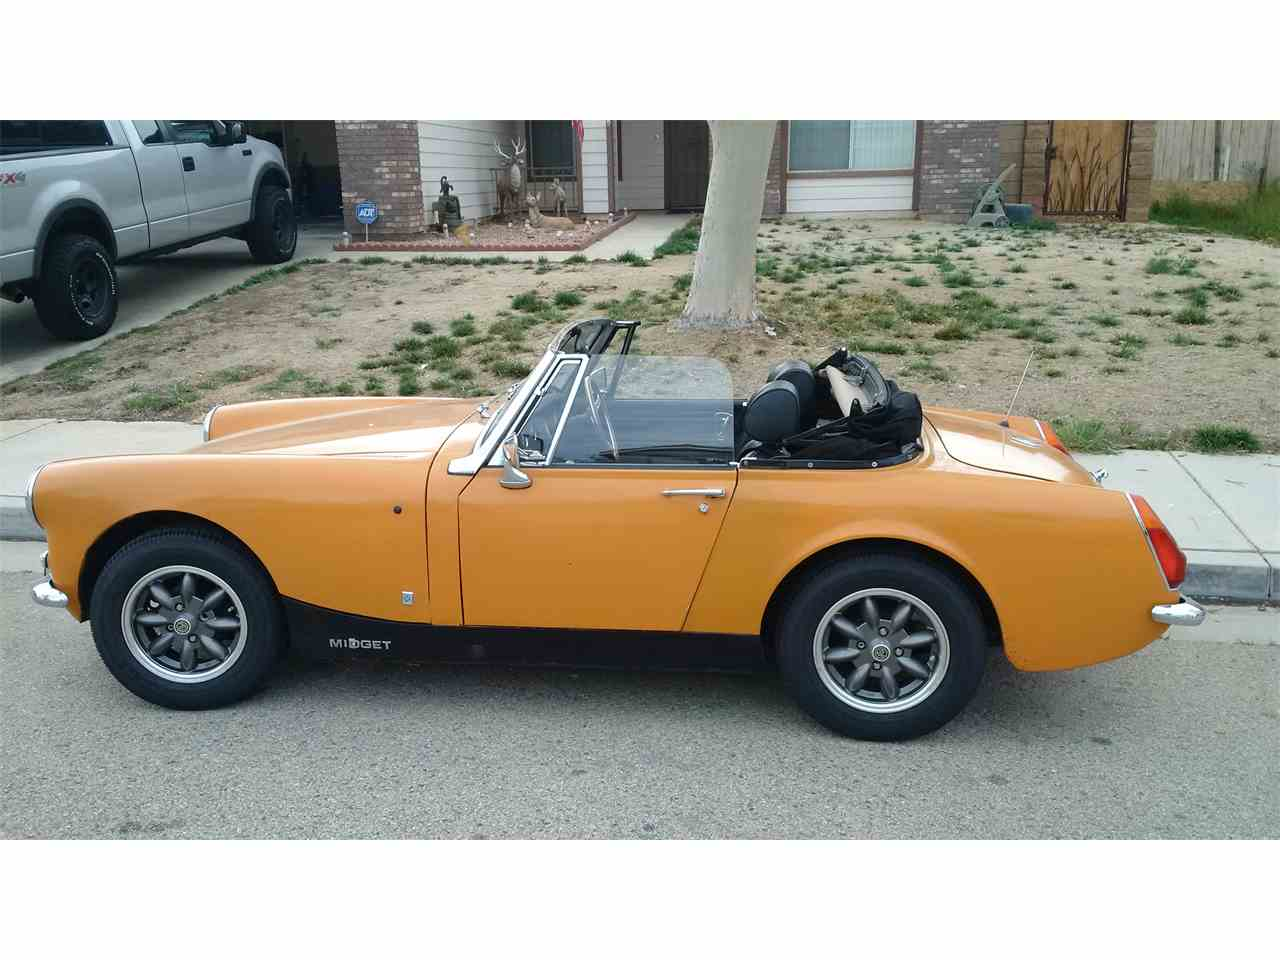 Large Picture of 1972 MG Midget - $9,000.00 Offered by a Private Seller - GLED